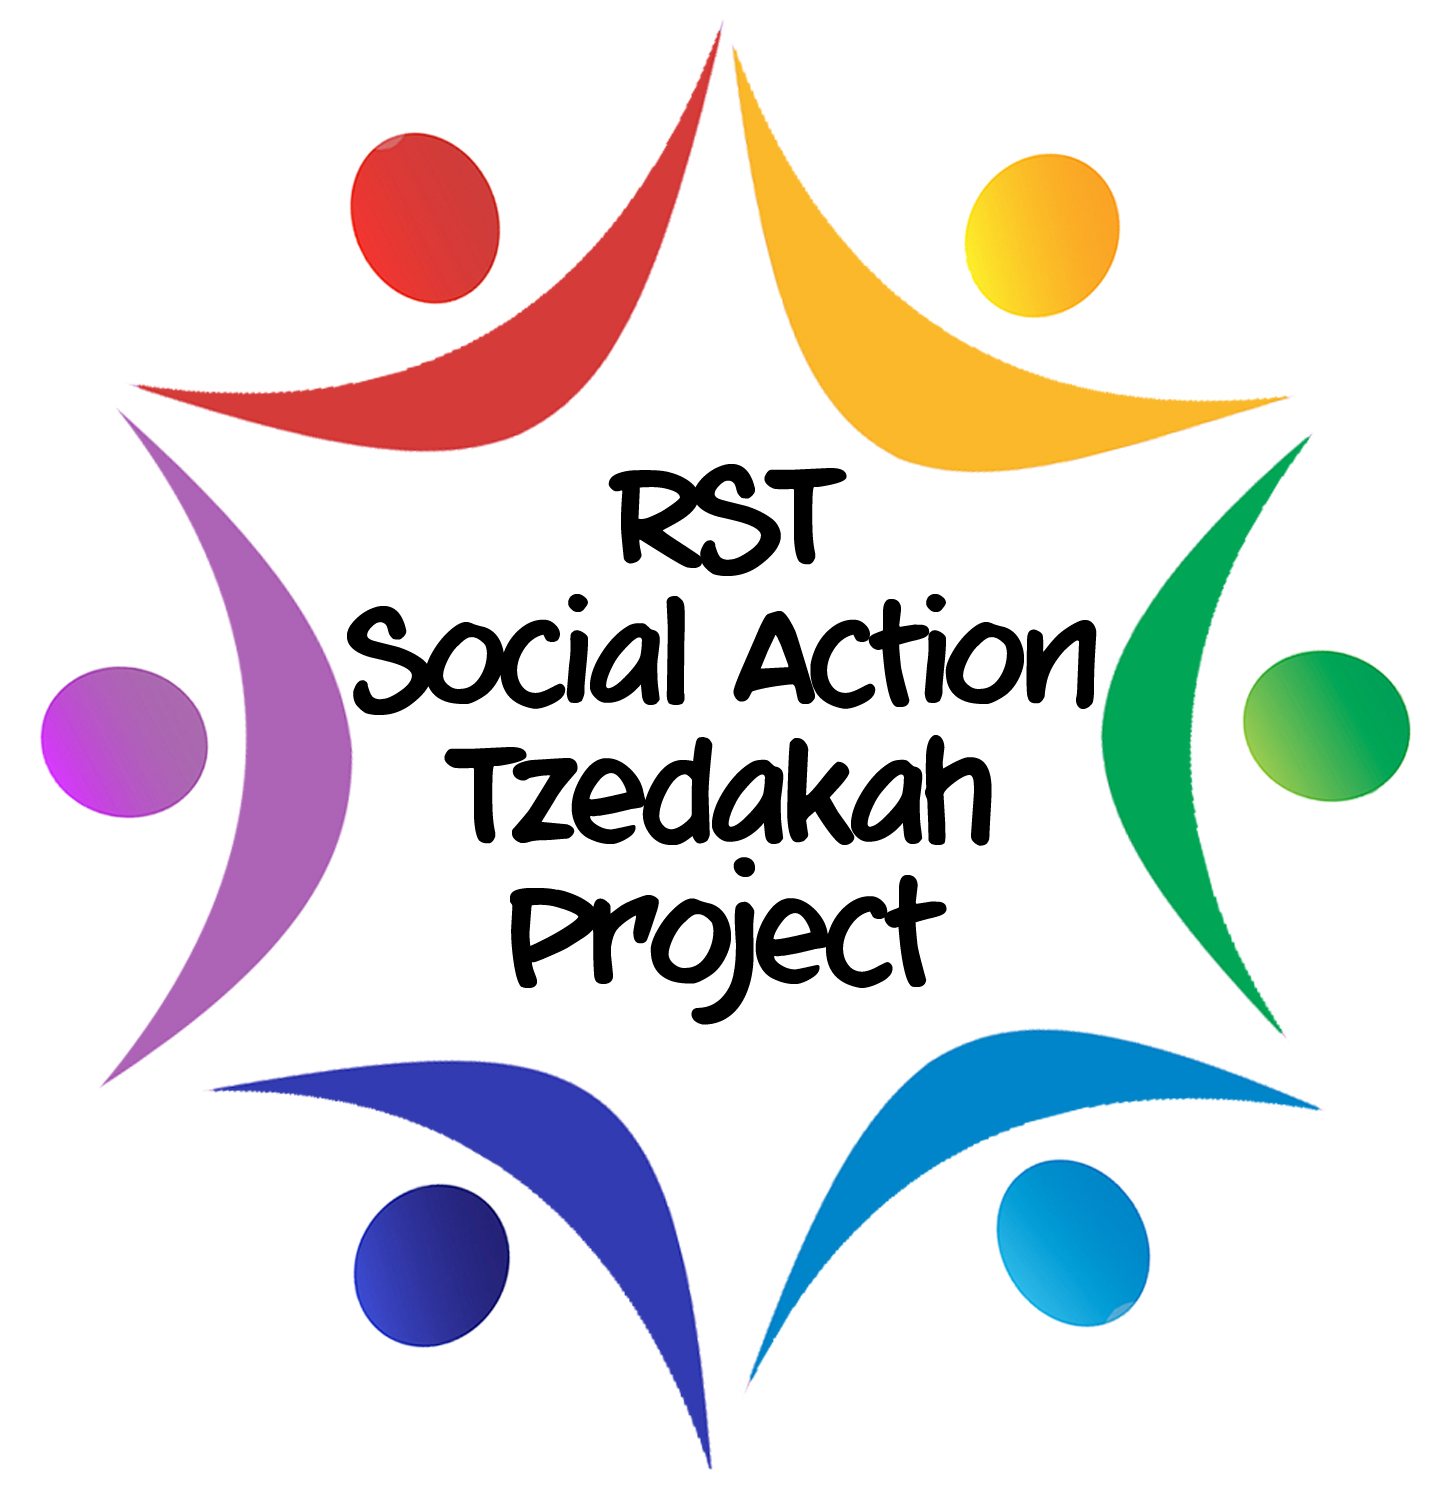 Social Action Tzedakah Project